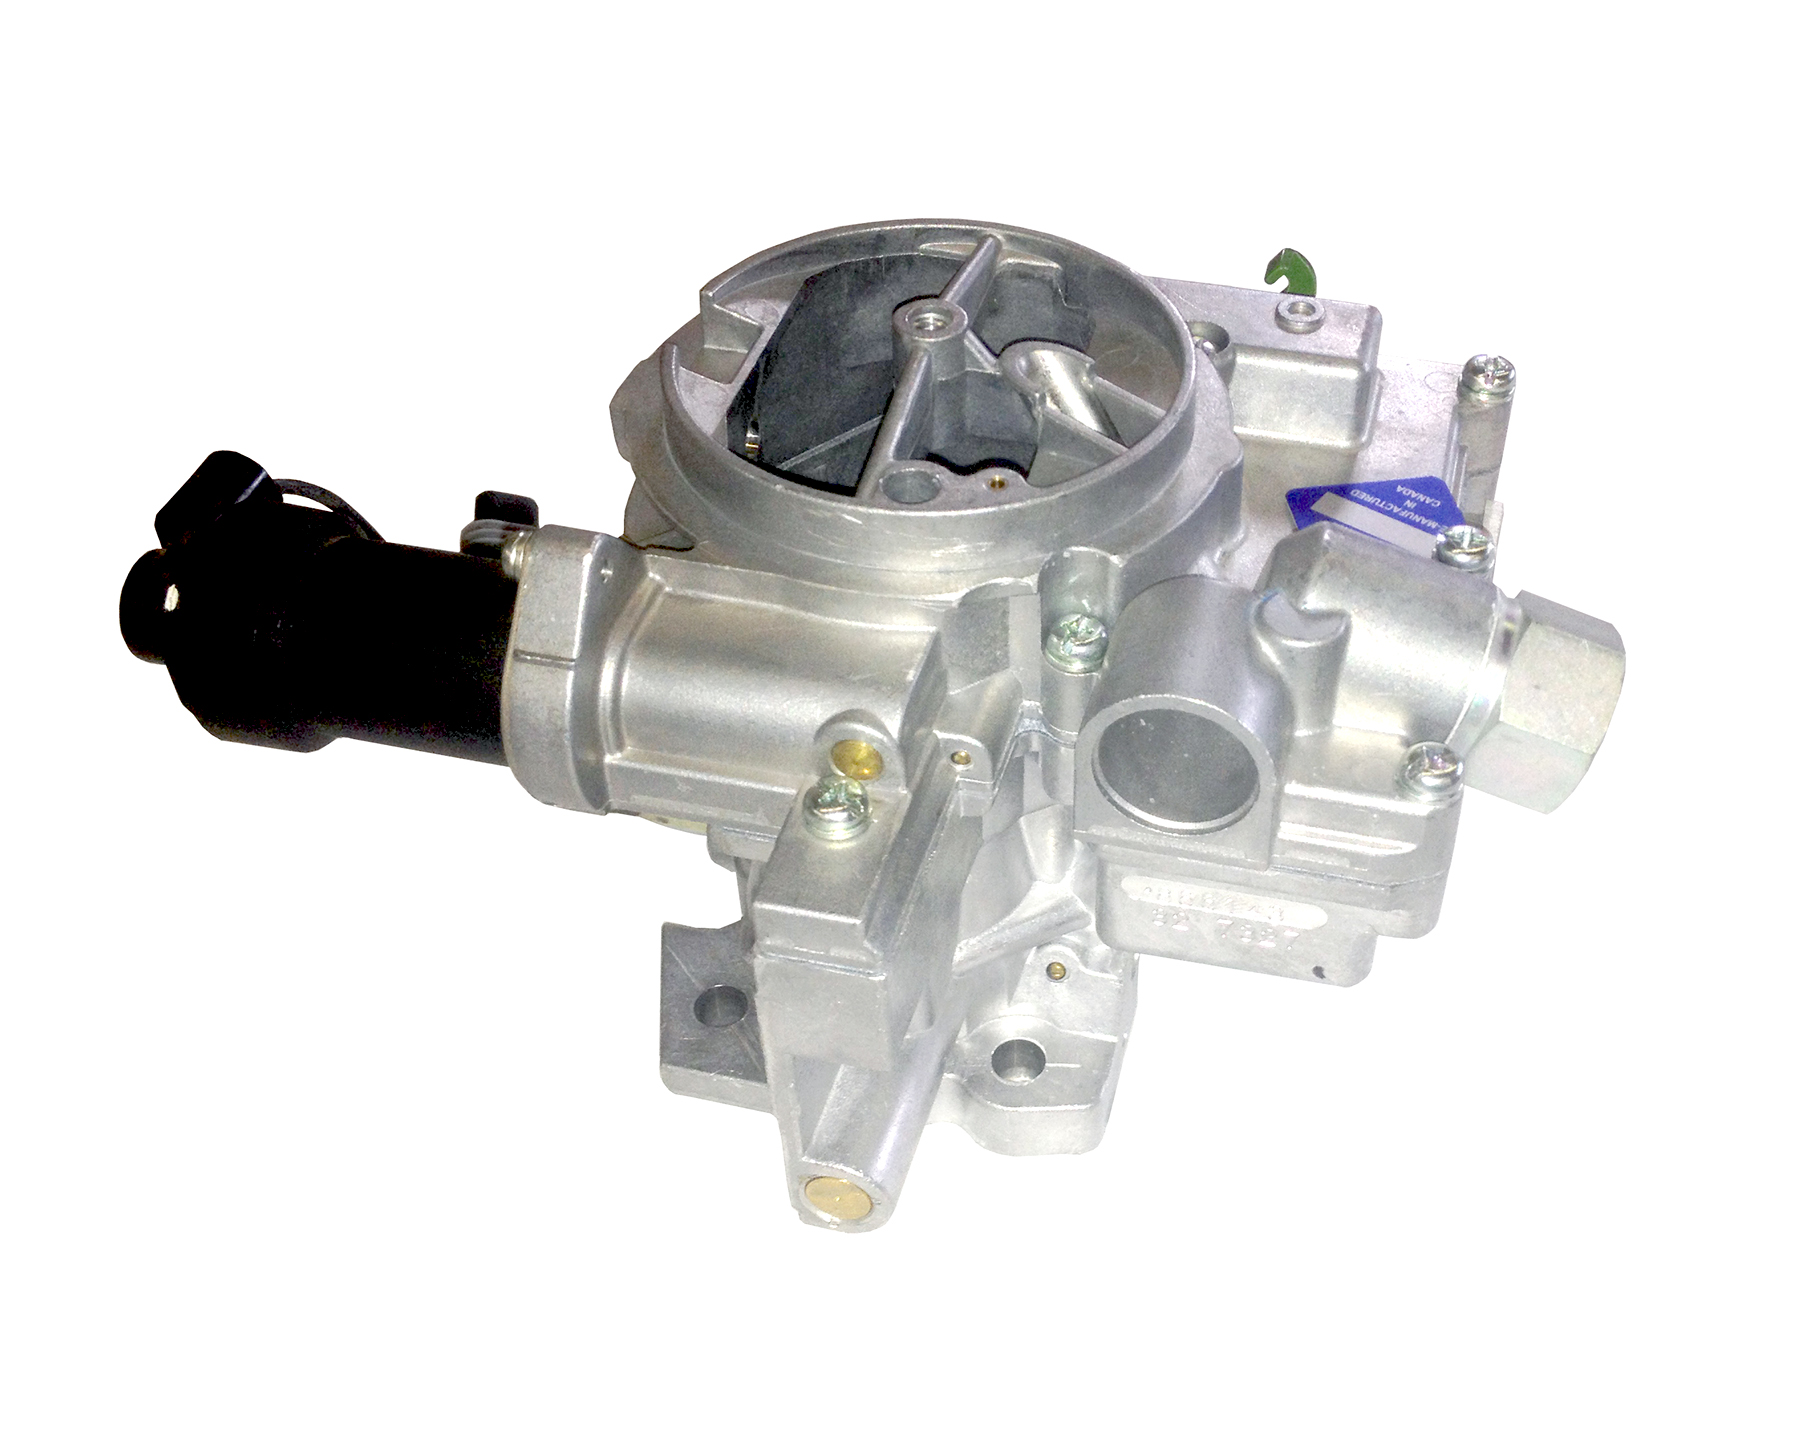 Carburetor 2bbl Mercarb for 5.7 TKS Mercruiser 3310-866143A03